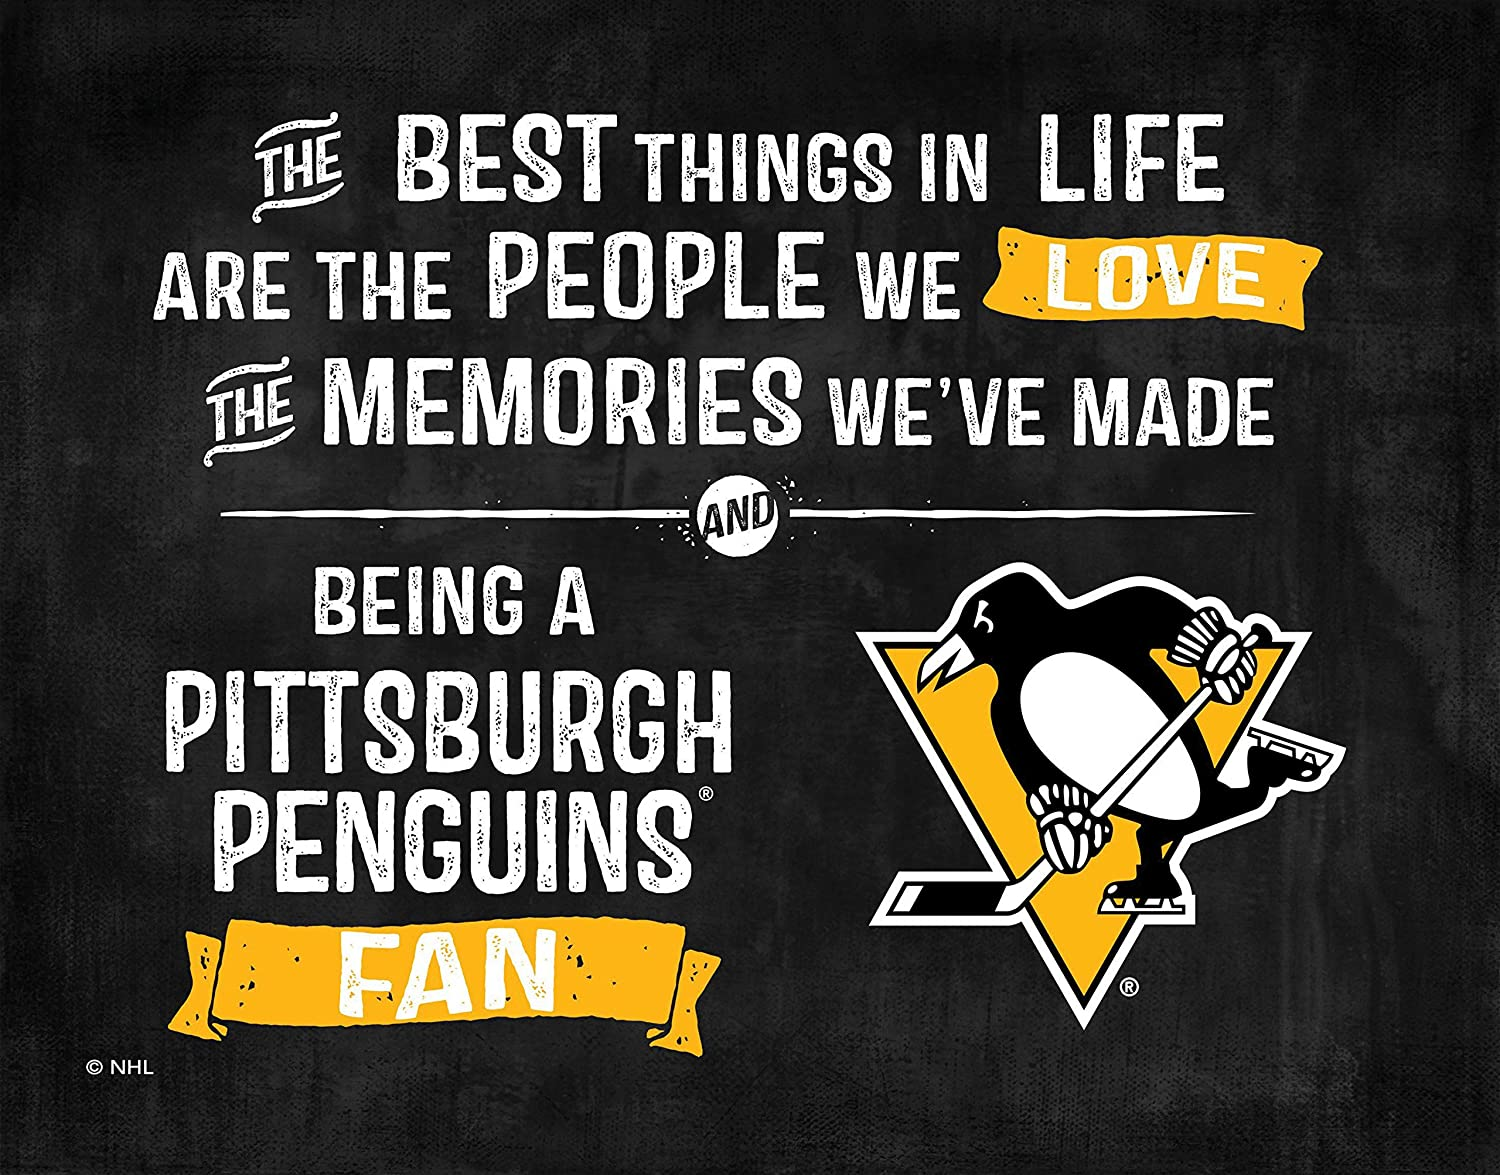 KH Sports Fan 1012102661 9.75x7.75 Pittsburgh Penguins Best Things Acrylic NHL Art Plaque